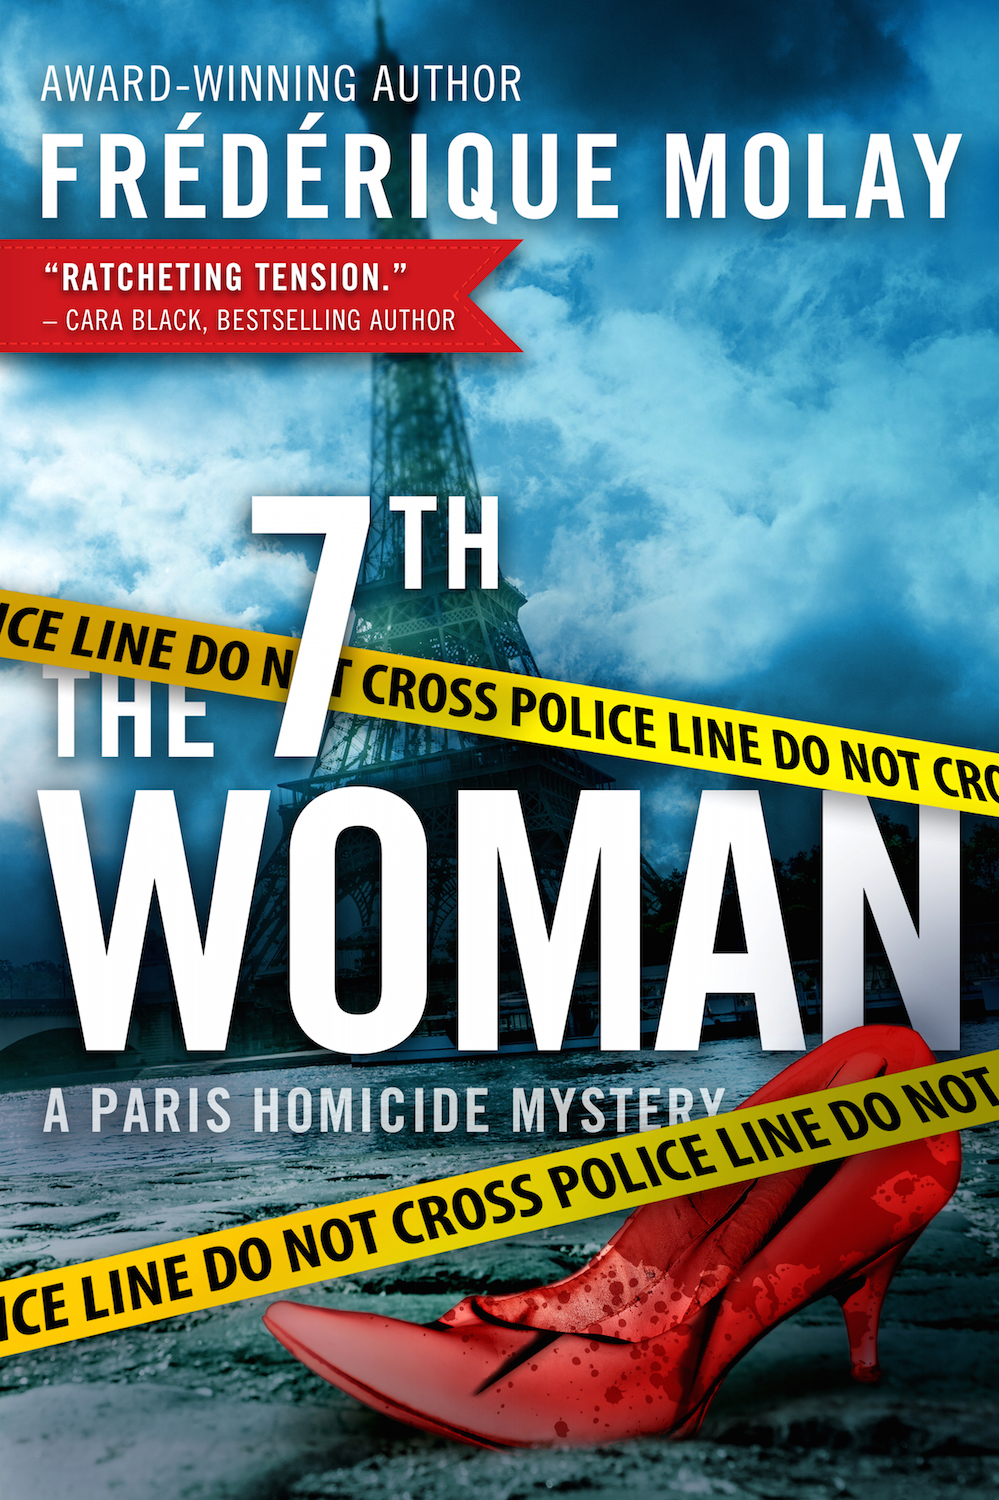 Award-winning mystery set in Paris